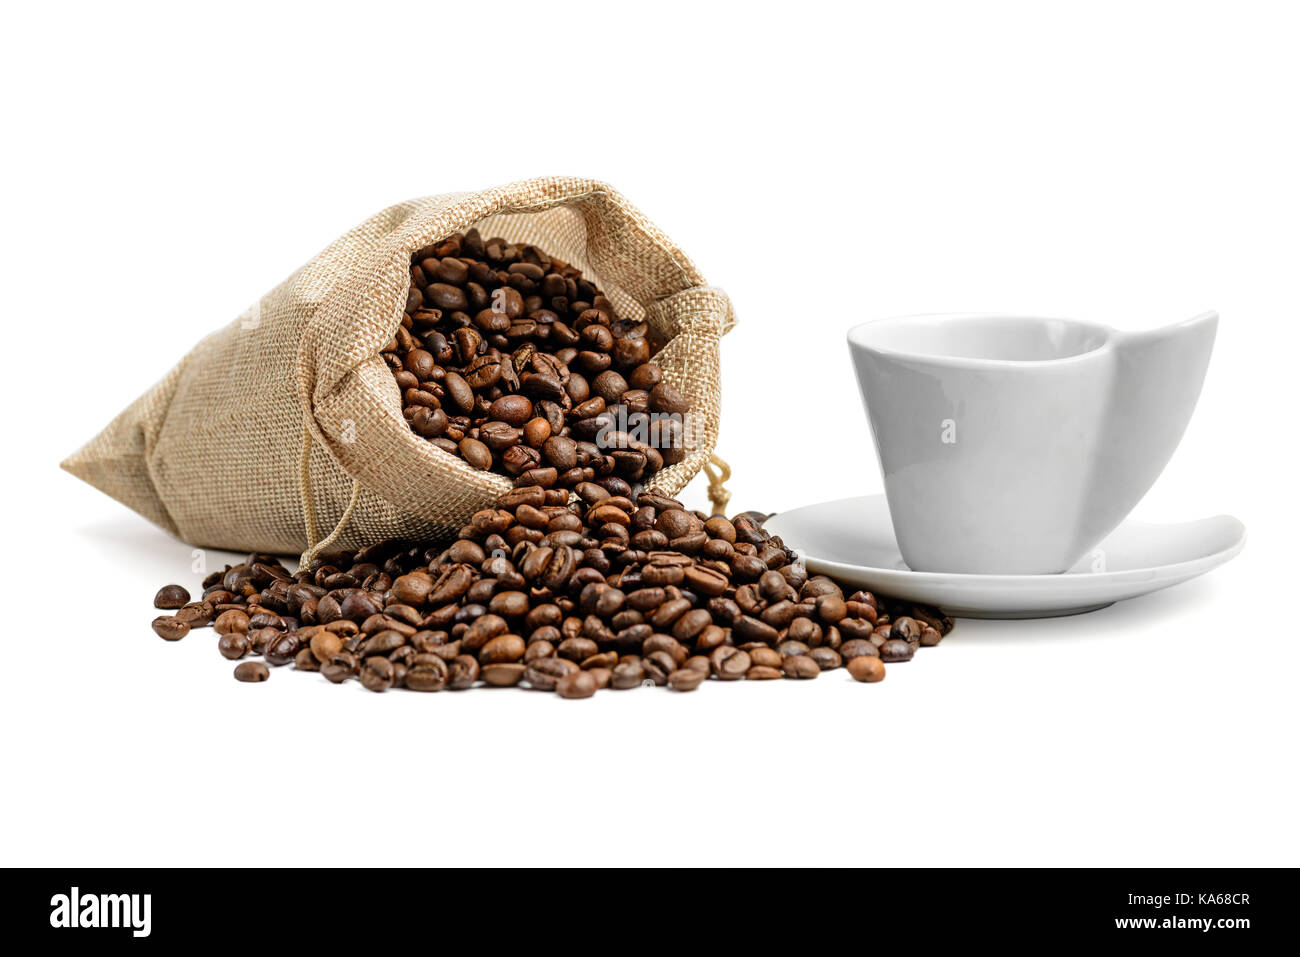 Coffee beans in jute sack  and  espresso cup isolated on white background - Stock Image